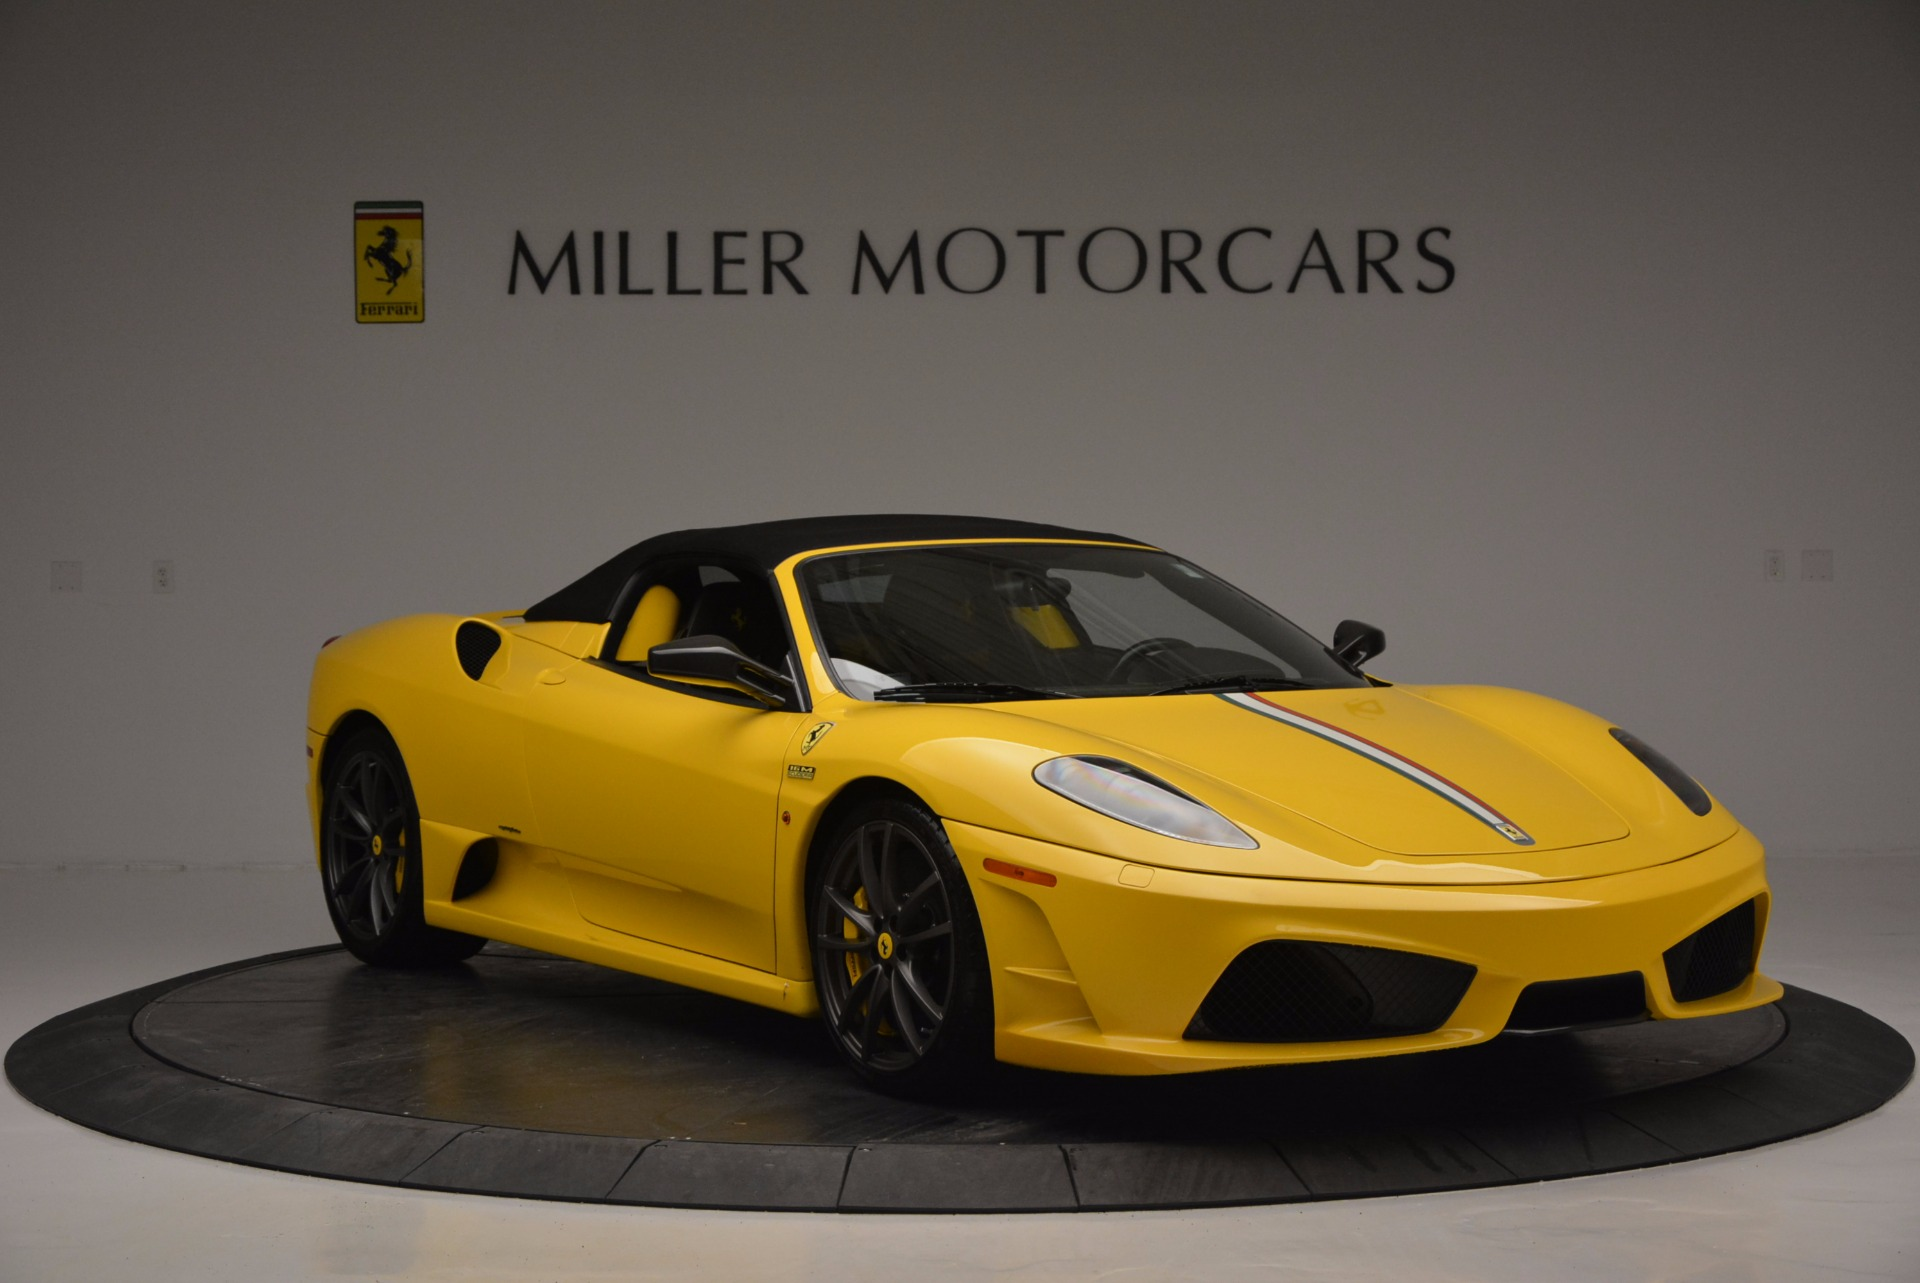 Used 2009 Ferrari F430 Scuderia 16M For Sale In Greenwich, CT 856_p23